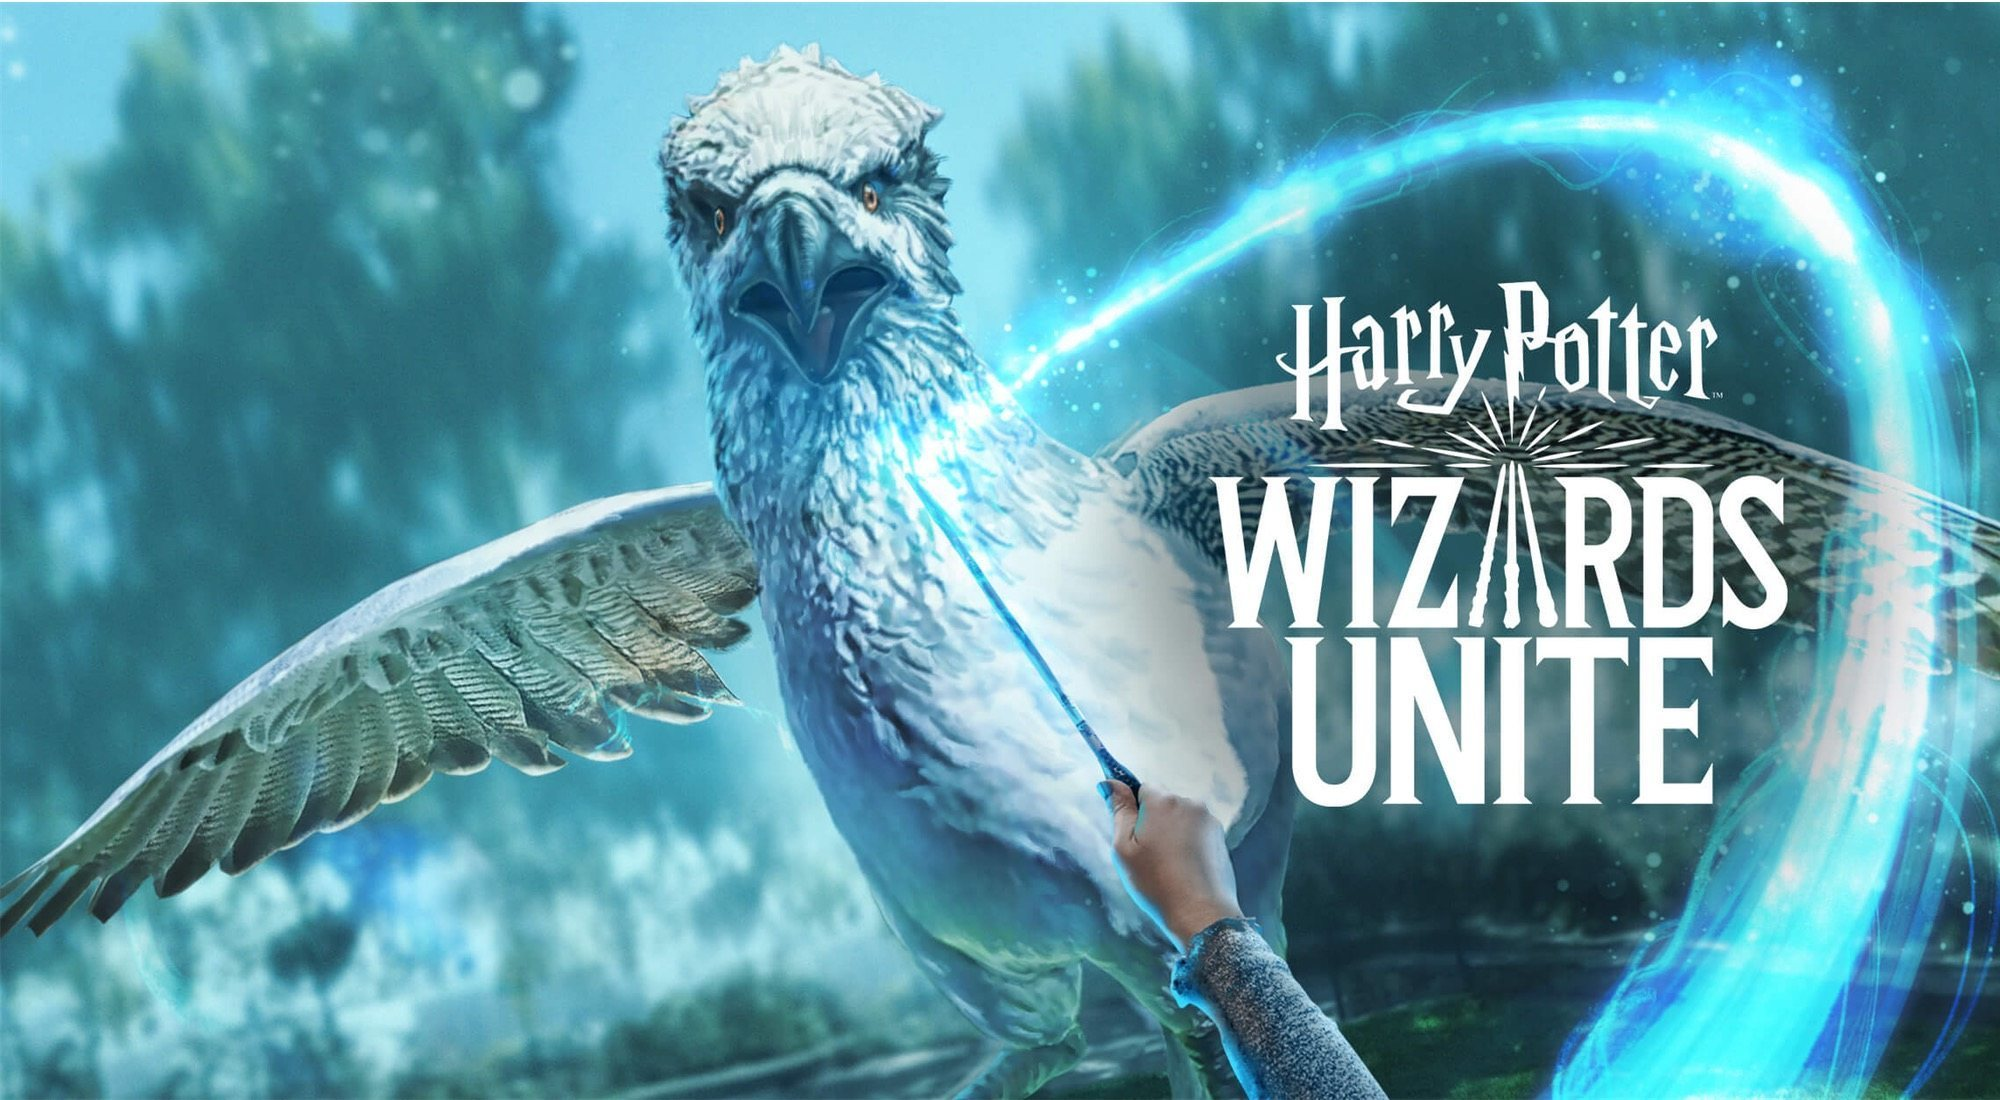 'Wizards Unite': el 'Pokémon Go' de Harry Potter